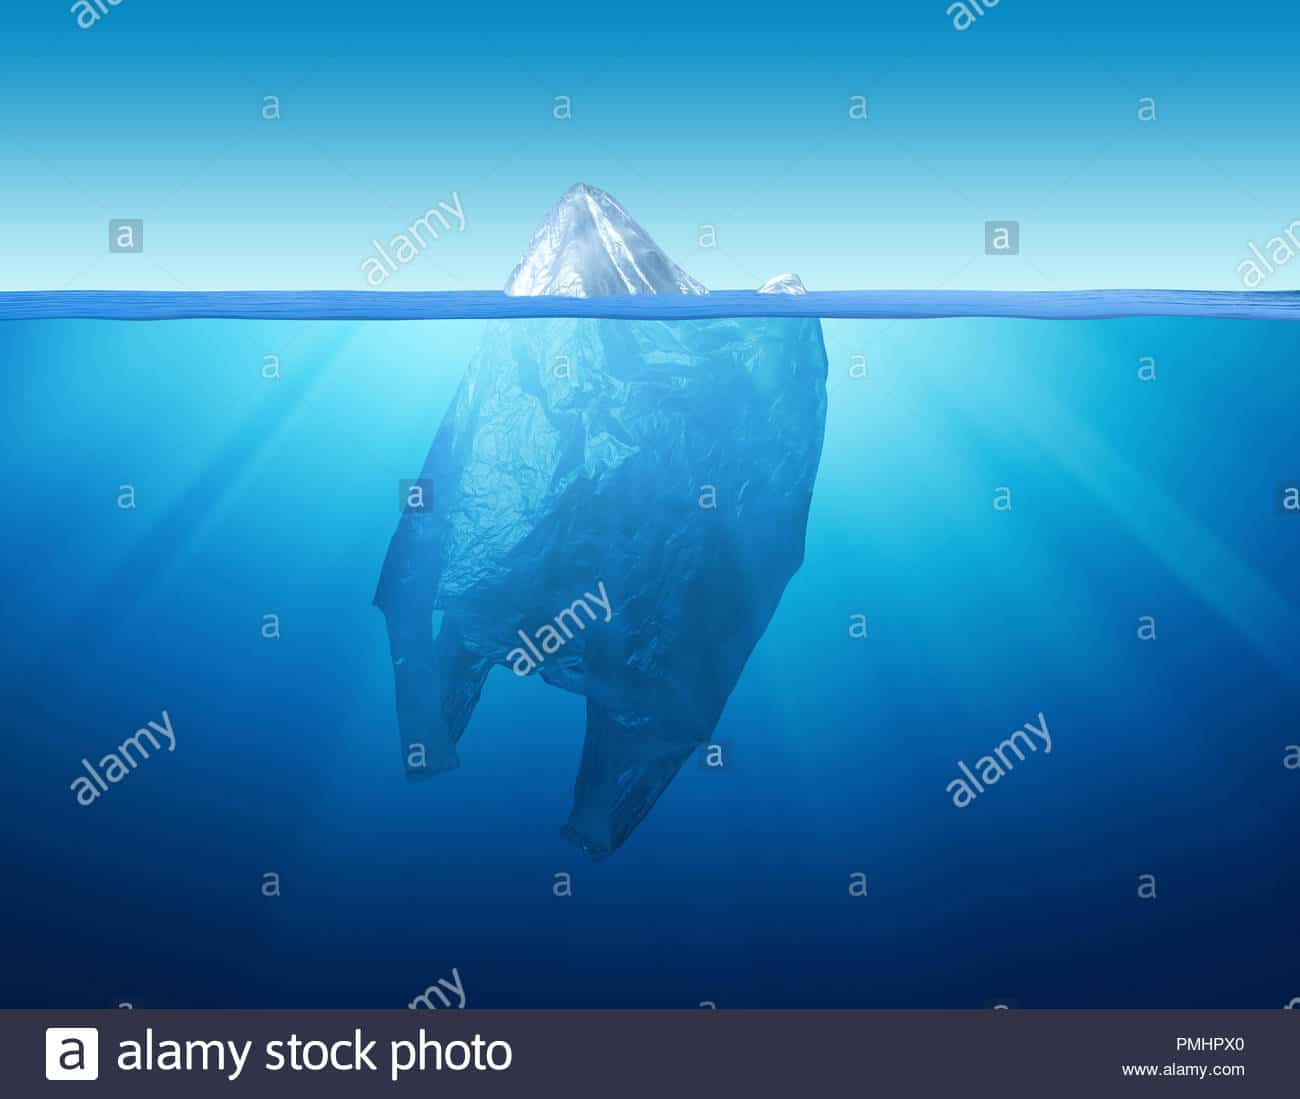 plastic-bag-environment-pollution-with-iceberg-PMHPX0